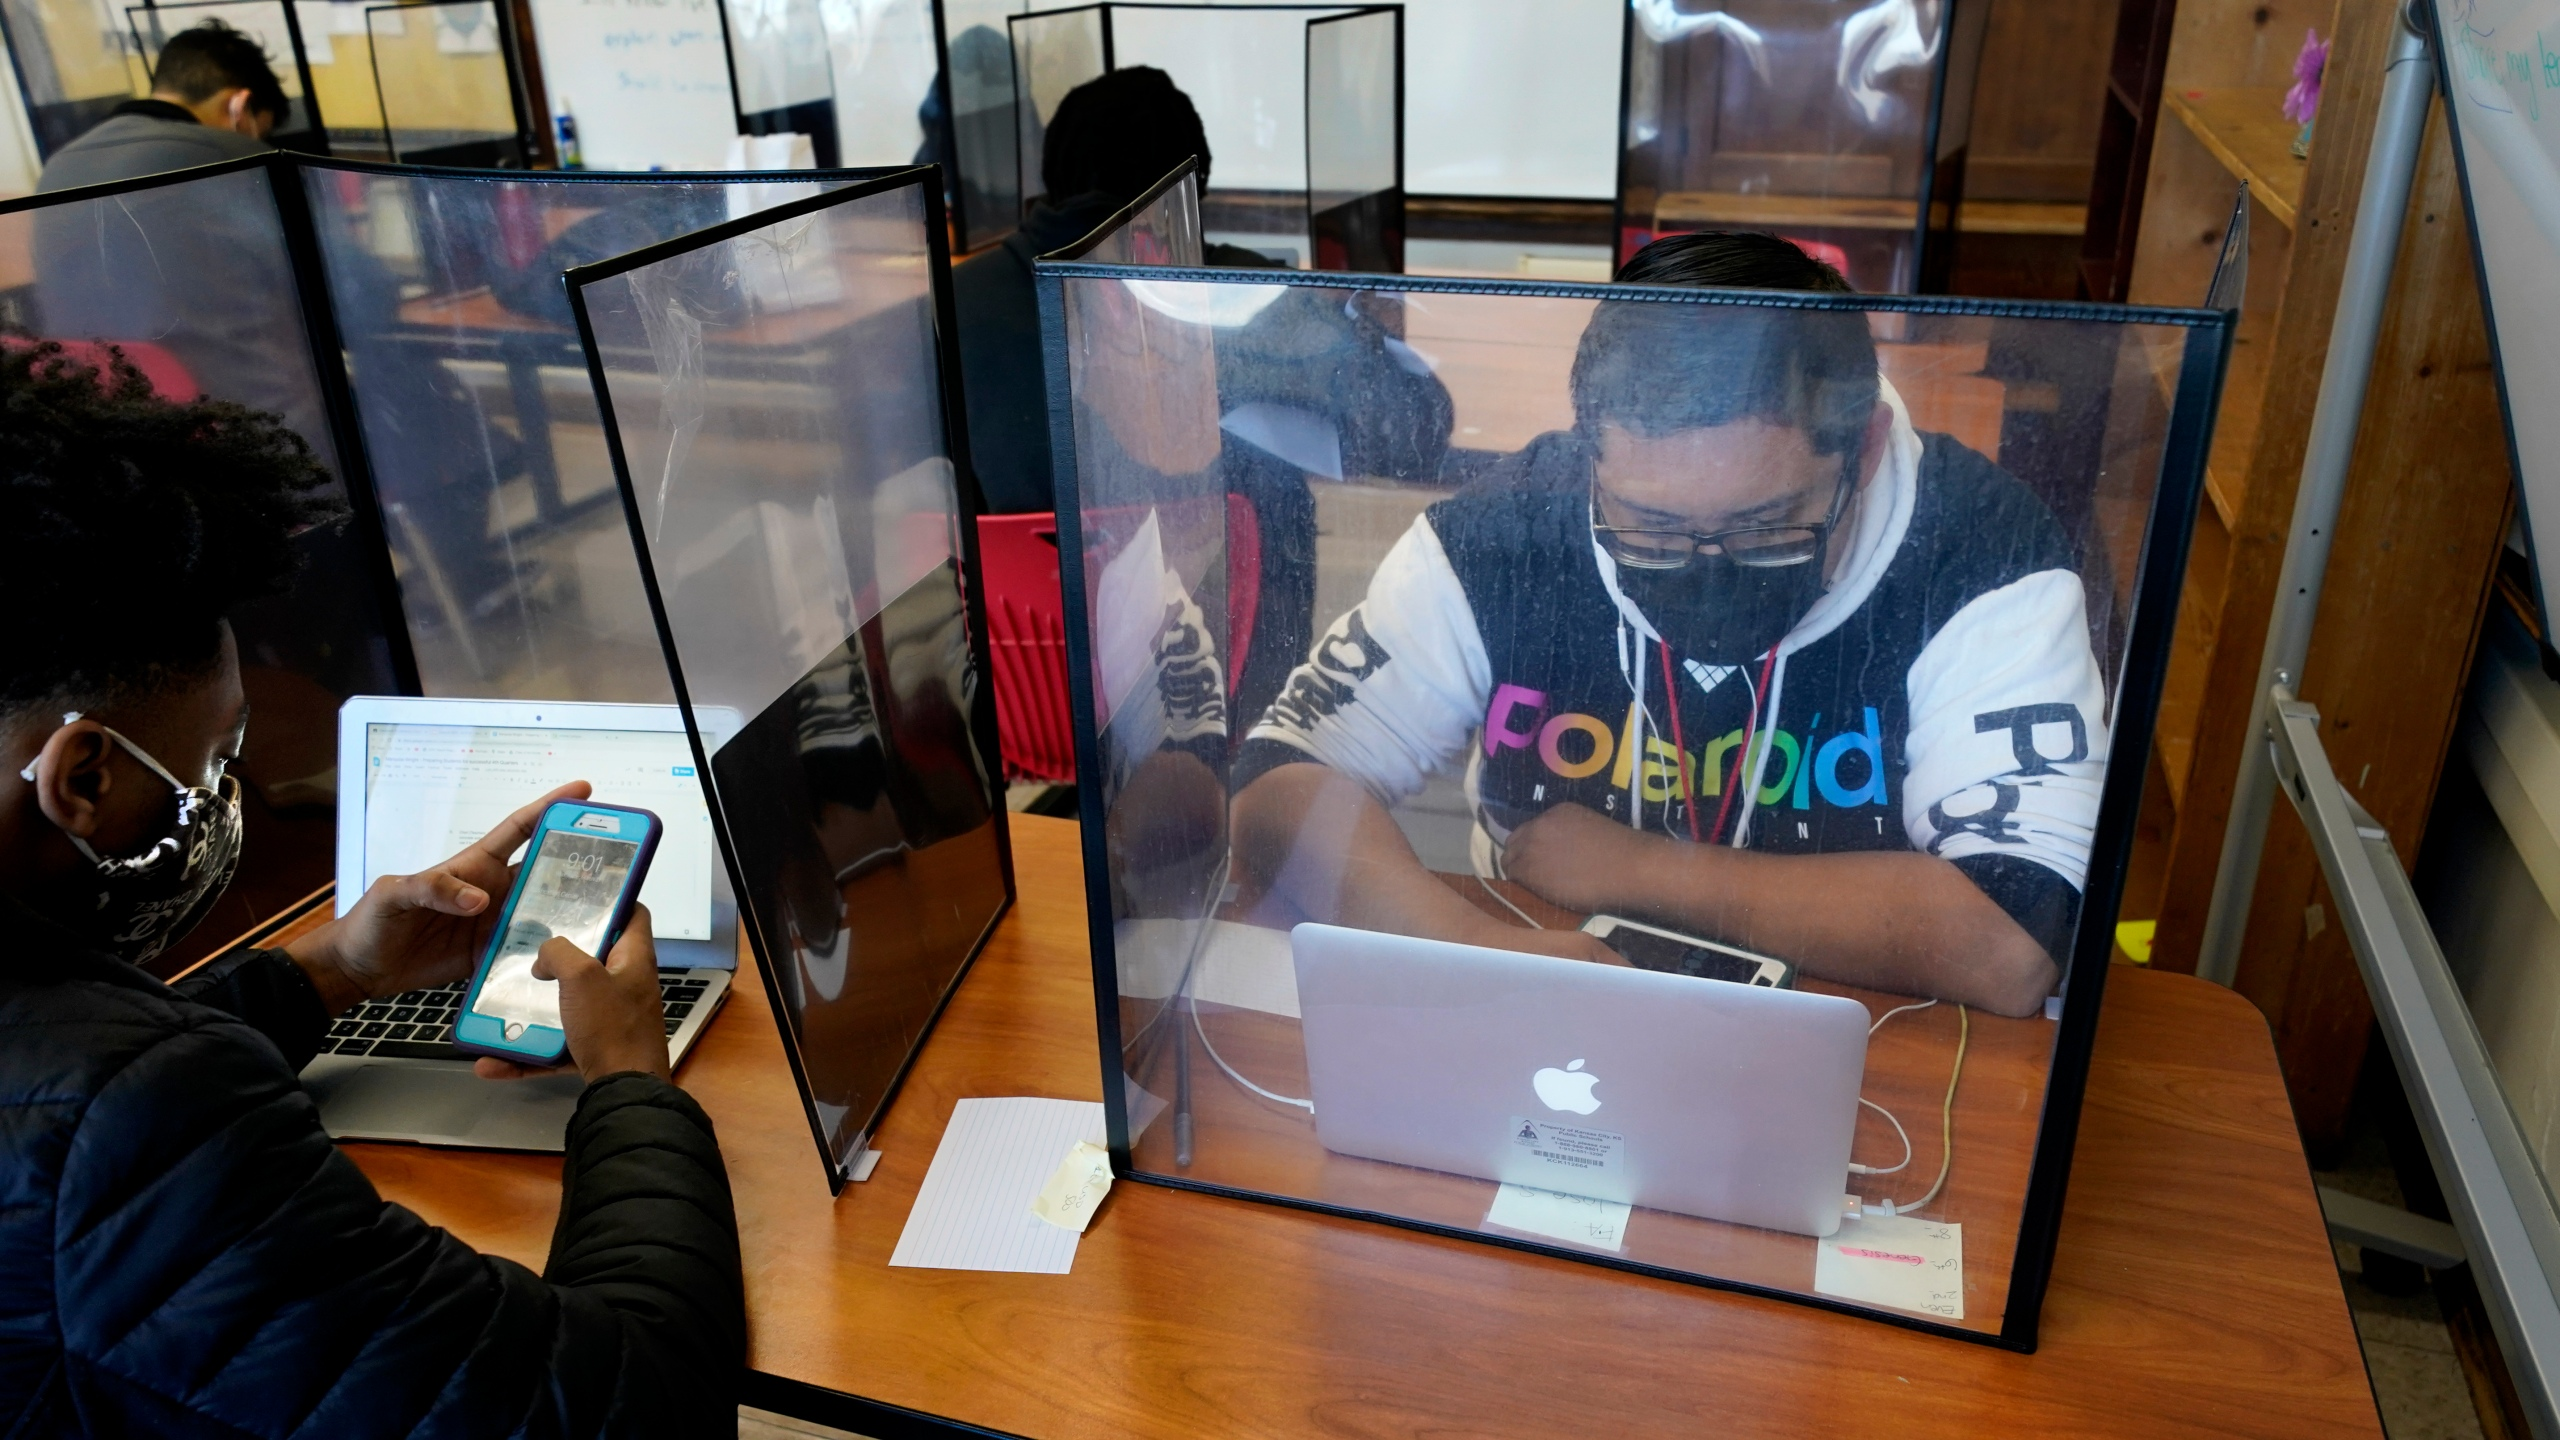 Senior Jose Solano-Hernandez, right, studies with classmates on the first day of in-person learning at Wyandotte High School in Kansas City, Kan., Wednesday, March 30, 2021. (AP Photo/Charlie Riedel)